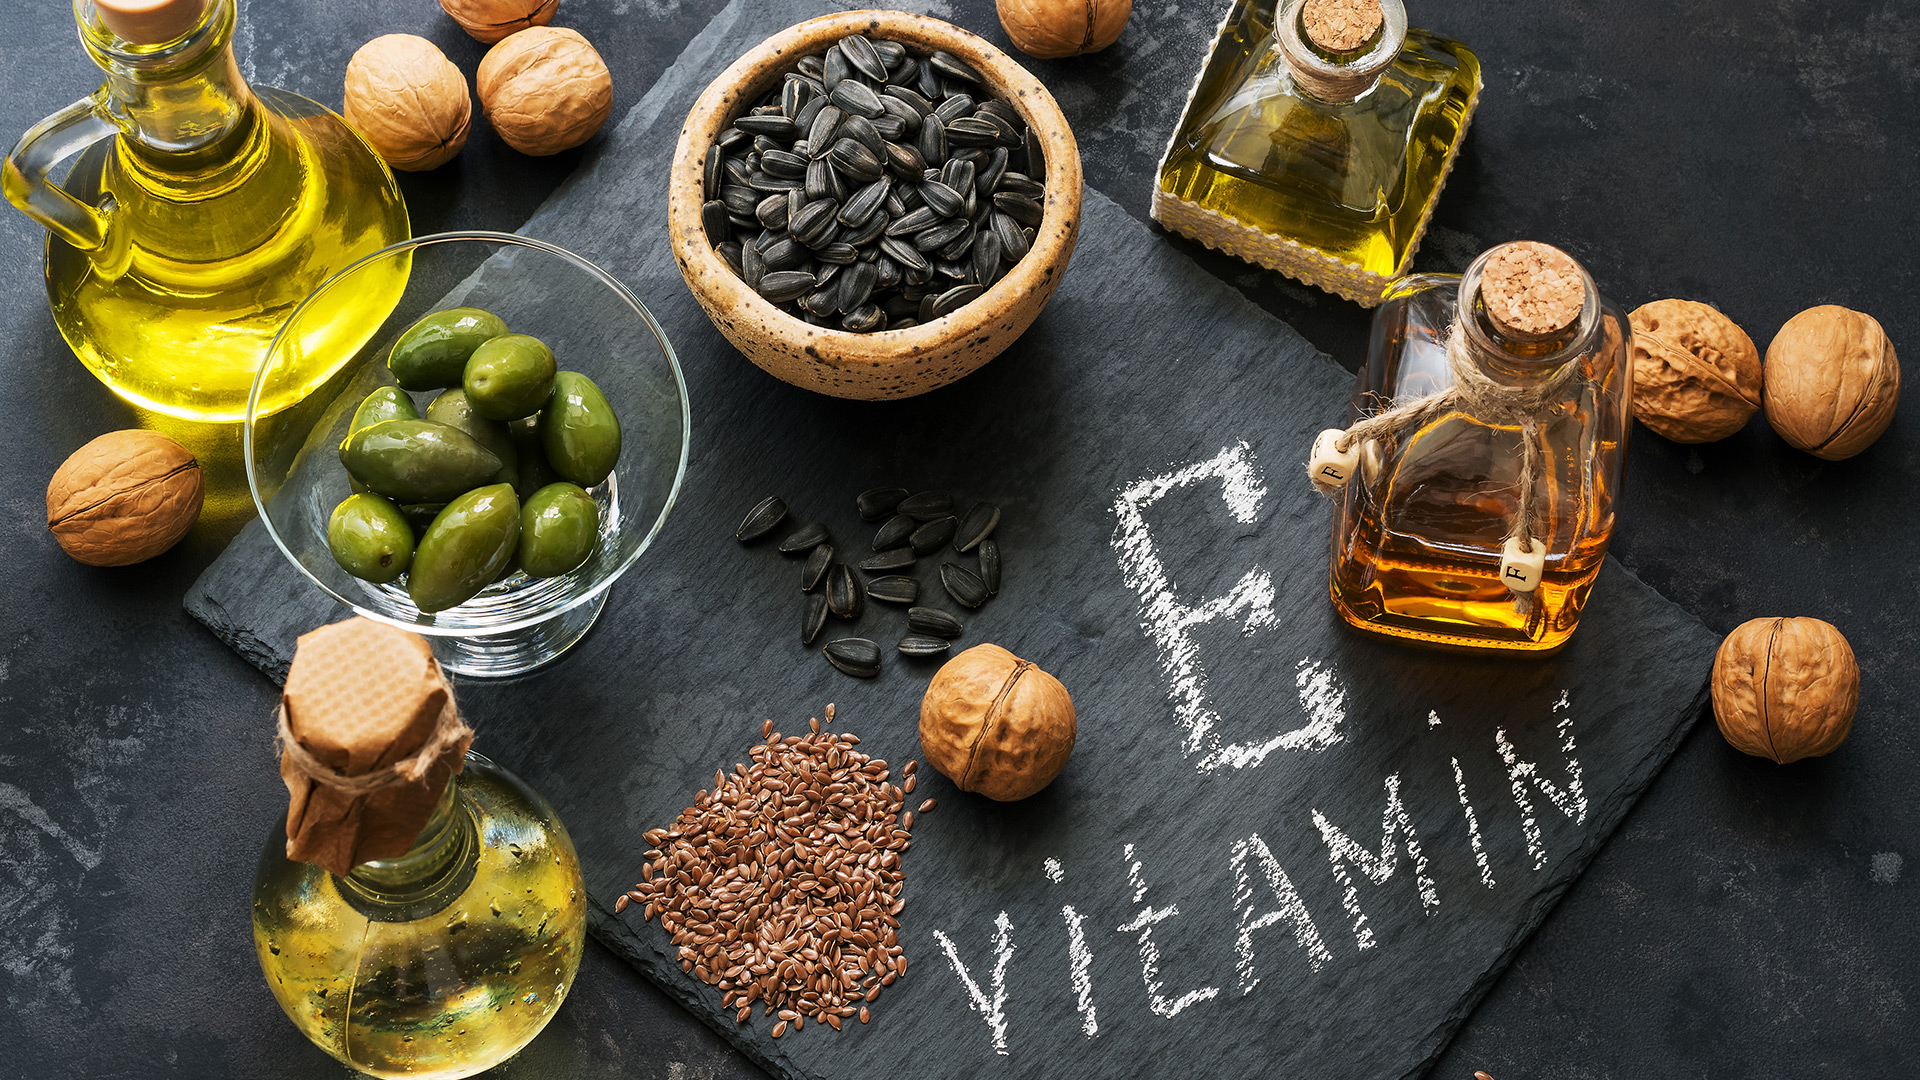 Does vitamin e make you fat